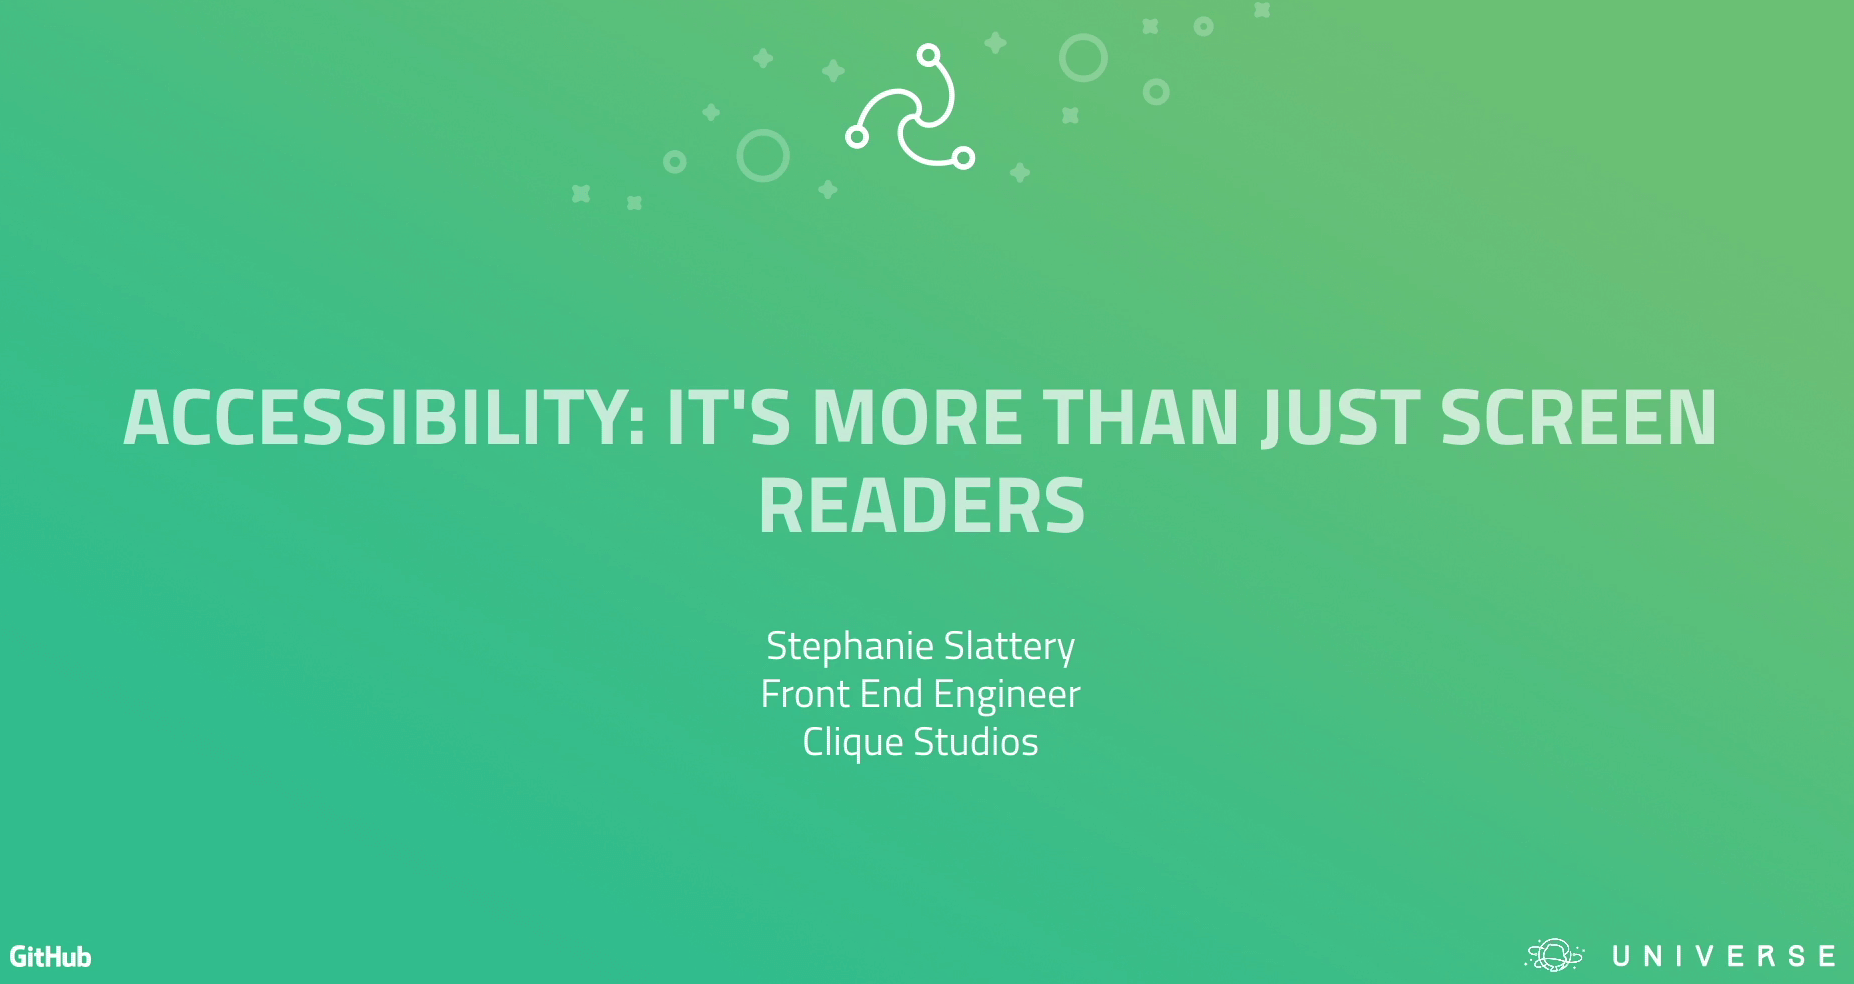 Accessibility: it's more than just screen readers